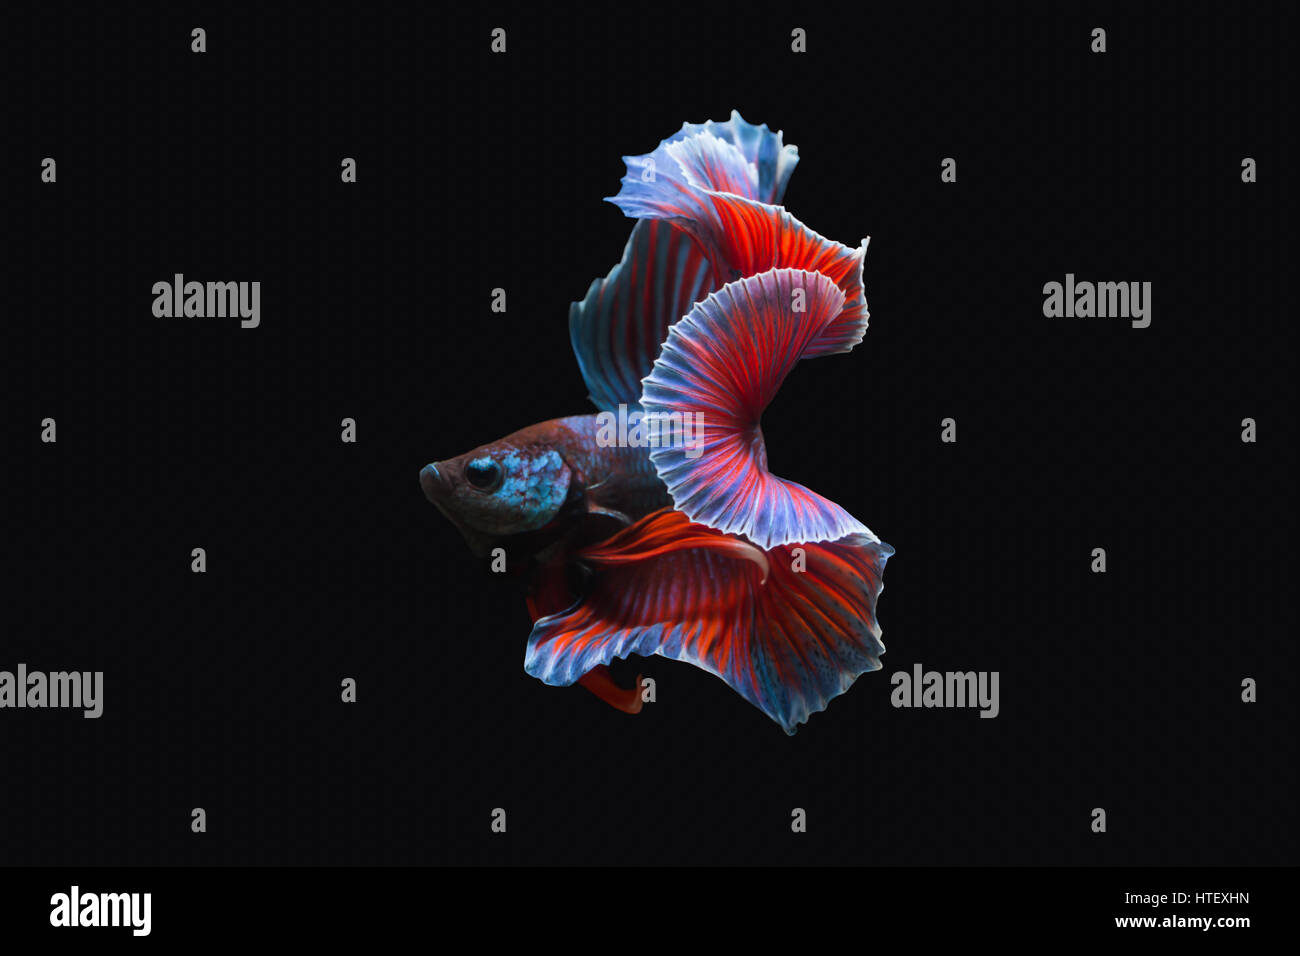 Thailand  fighting fish, isolated on black background. Capture the moving moment of siamese fighting fish. - Stock Image